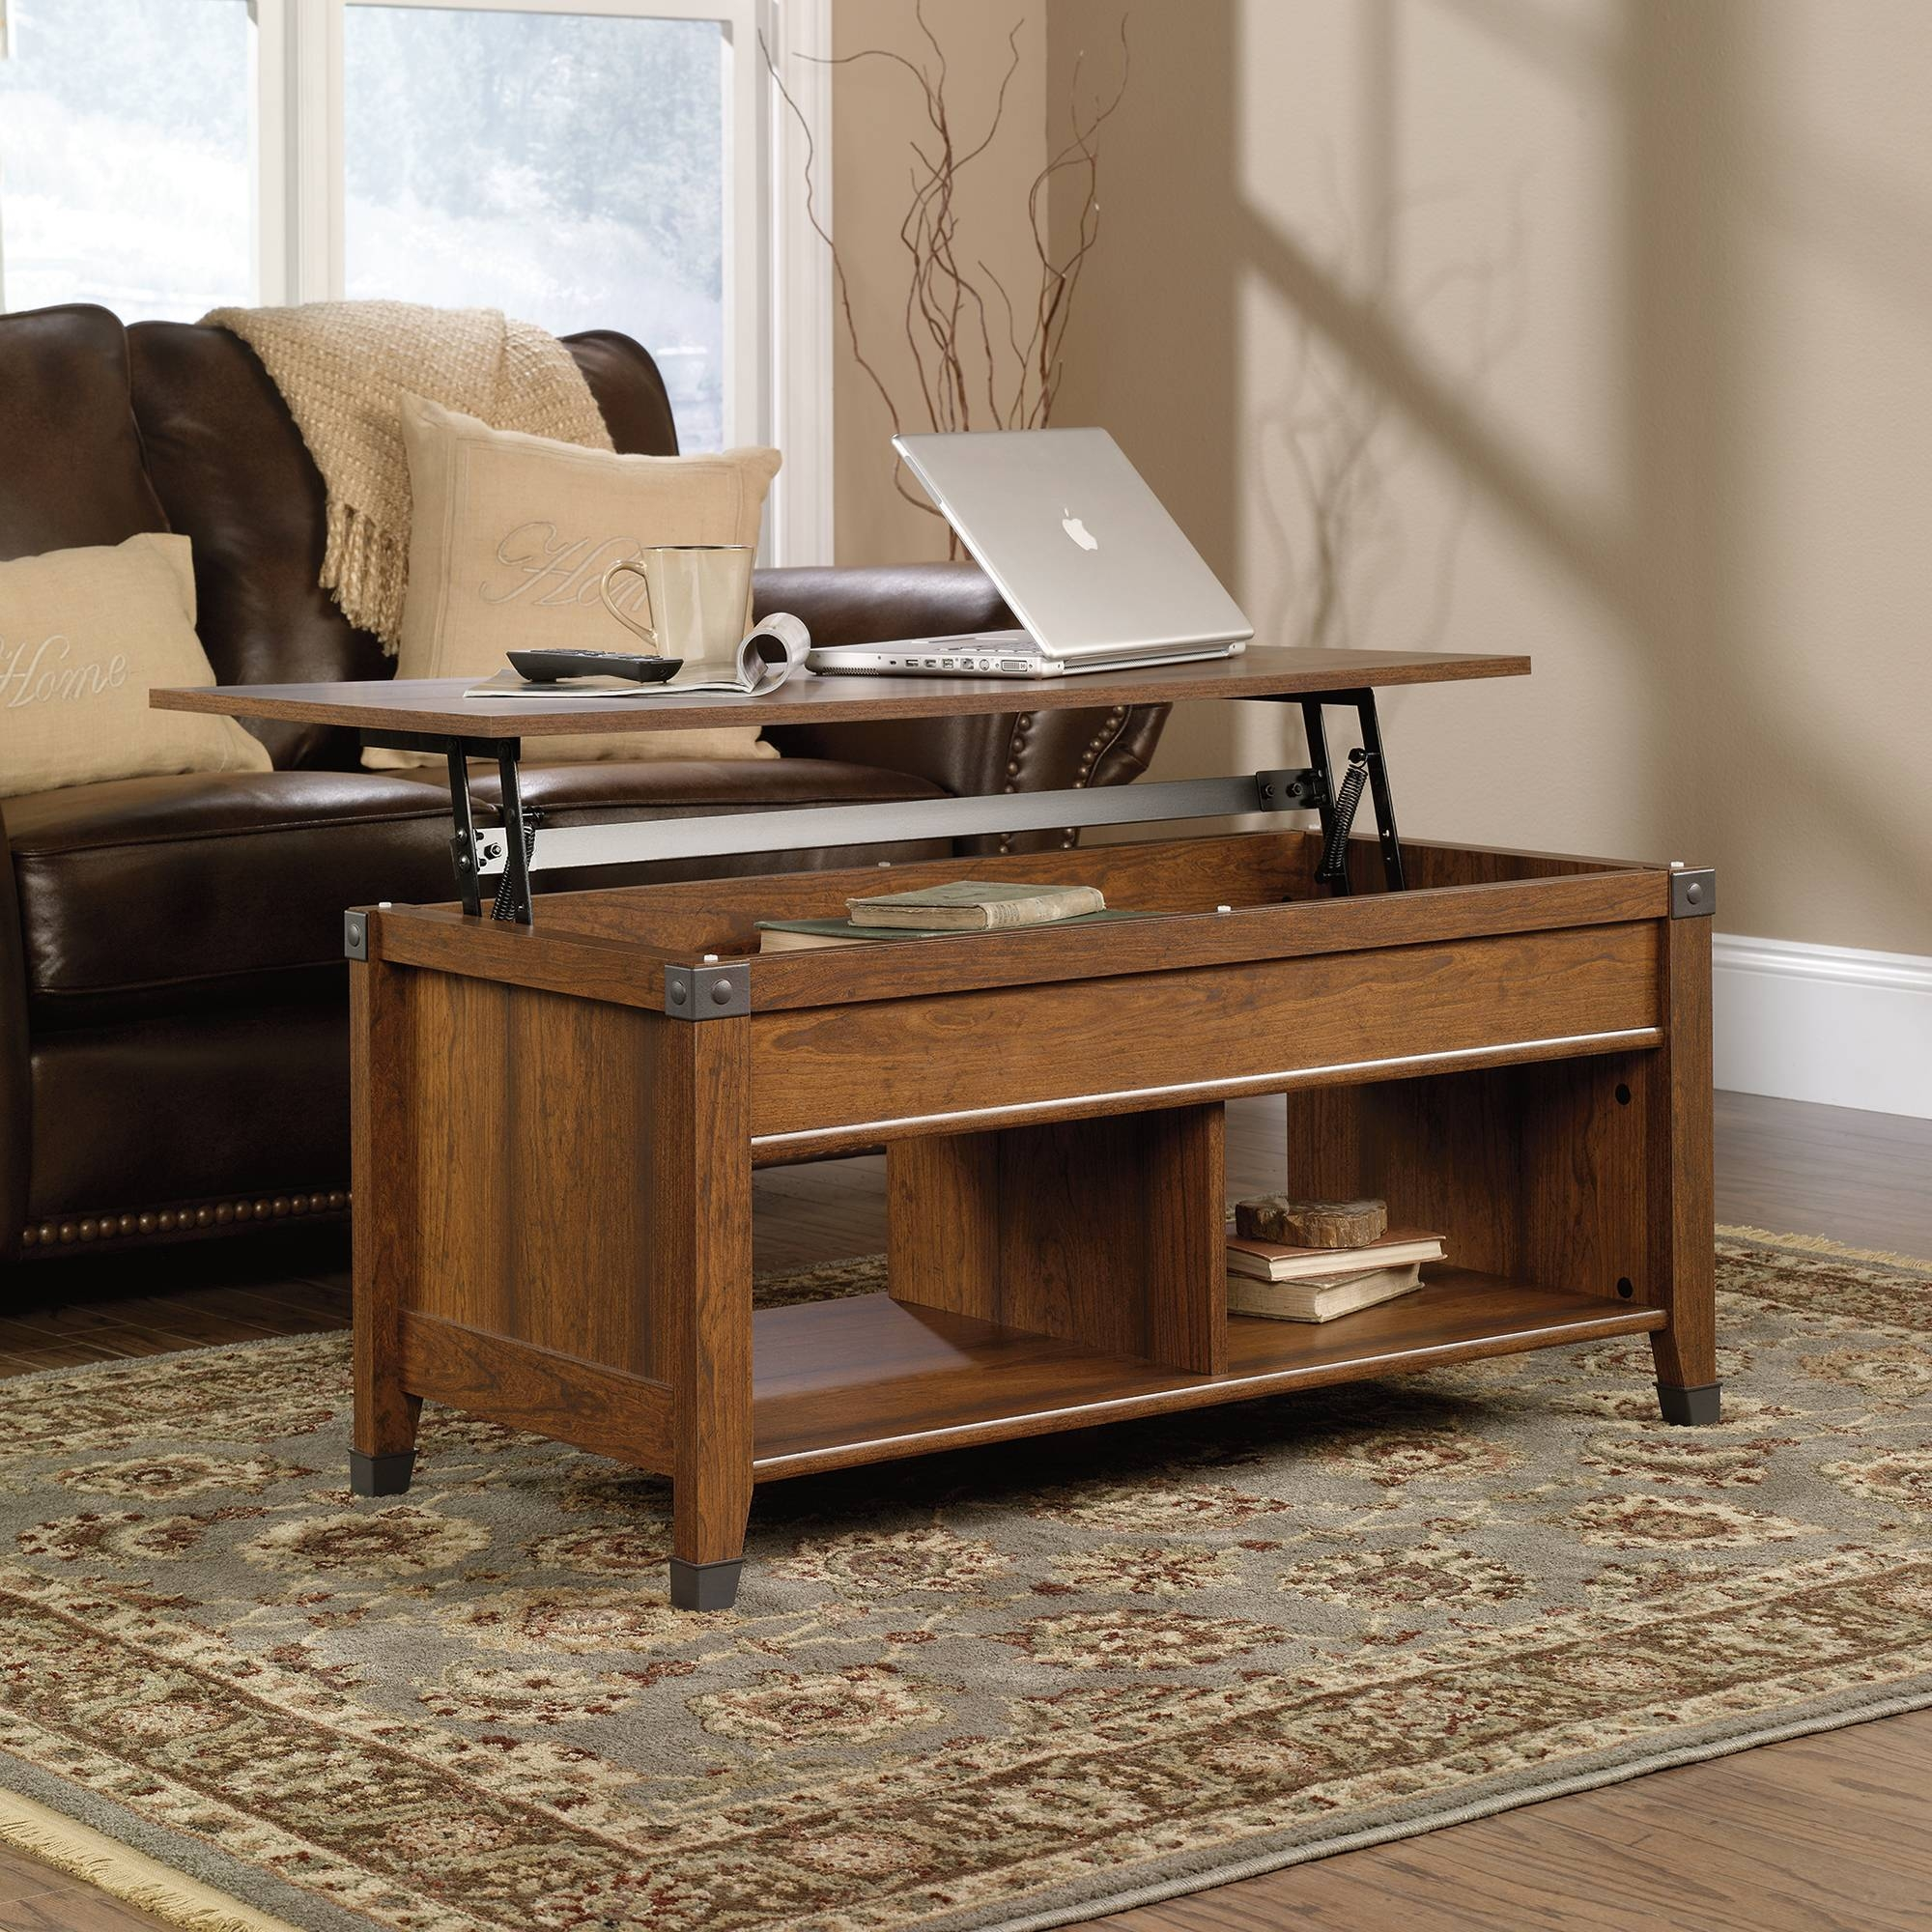 Carson Forge | Lift-Top Coffee Table | 414444 | Sauder pertaining to Corner Coffee Tables (Image 6 of 30)